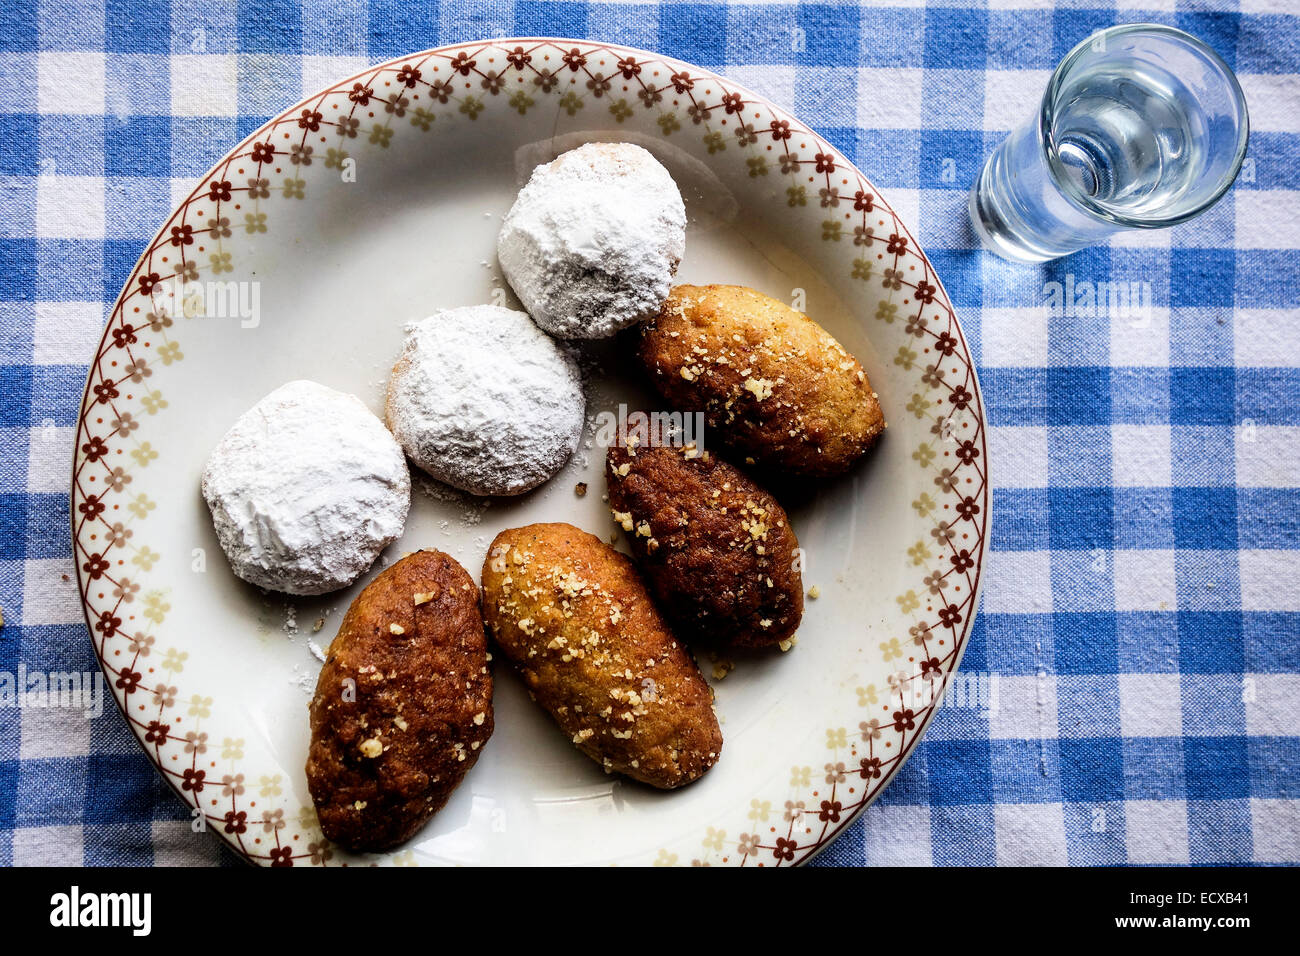 traditional greek christmas bisquits melomakarona kourabiedes and glass of raki tsikoudia stock image - Greek Christmas Food